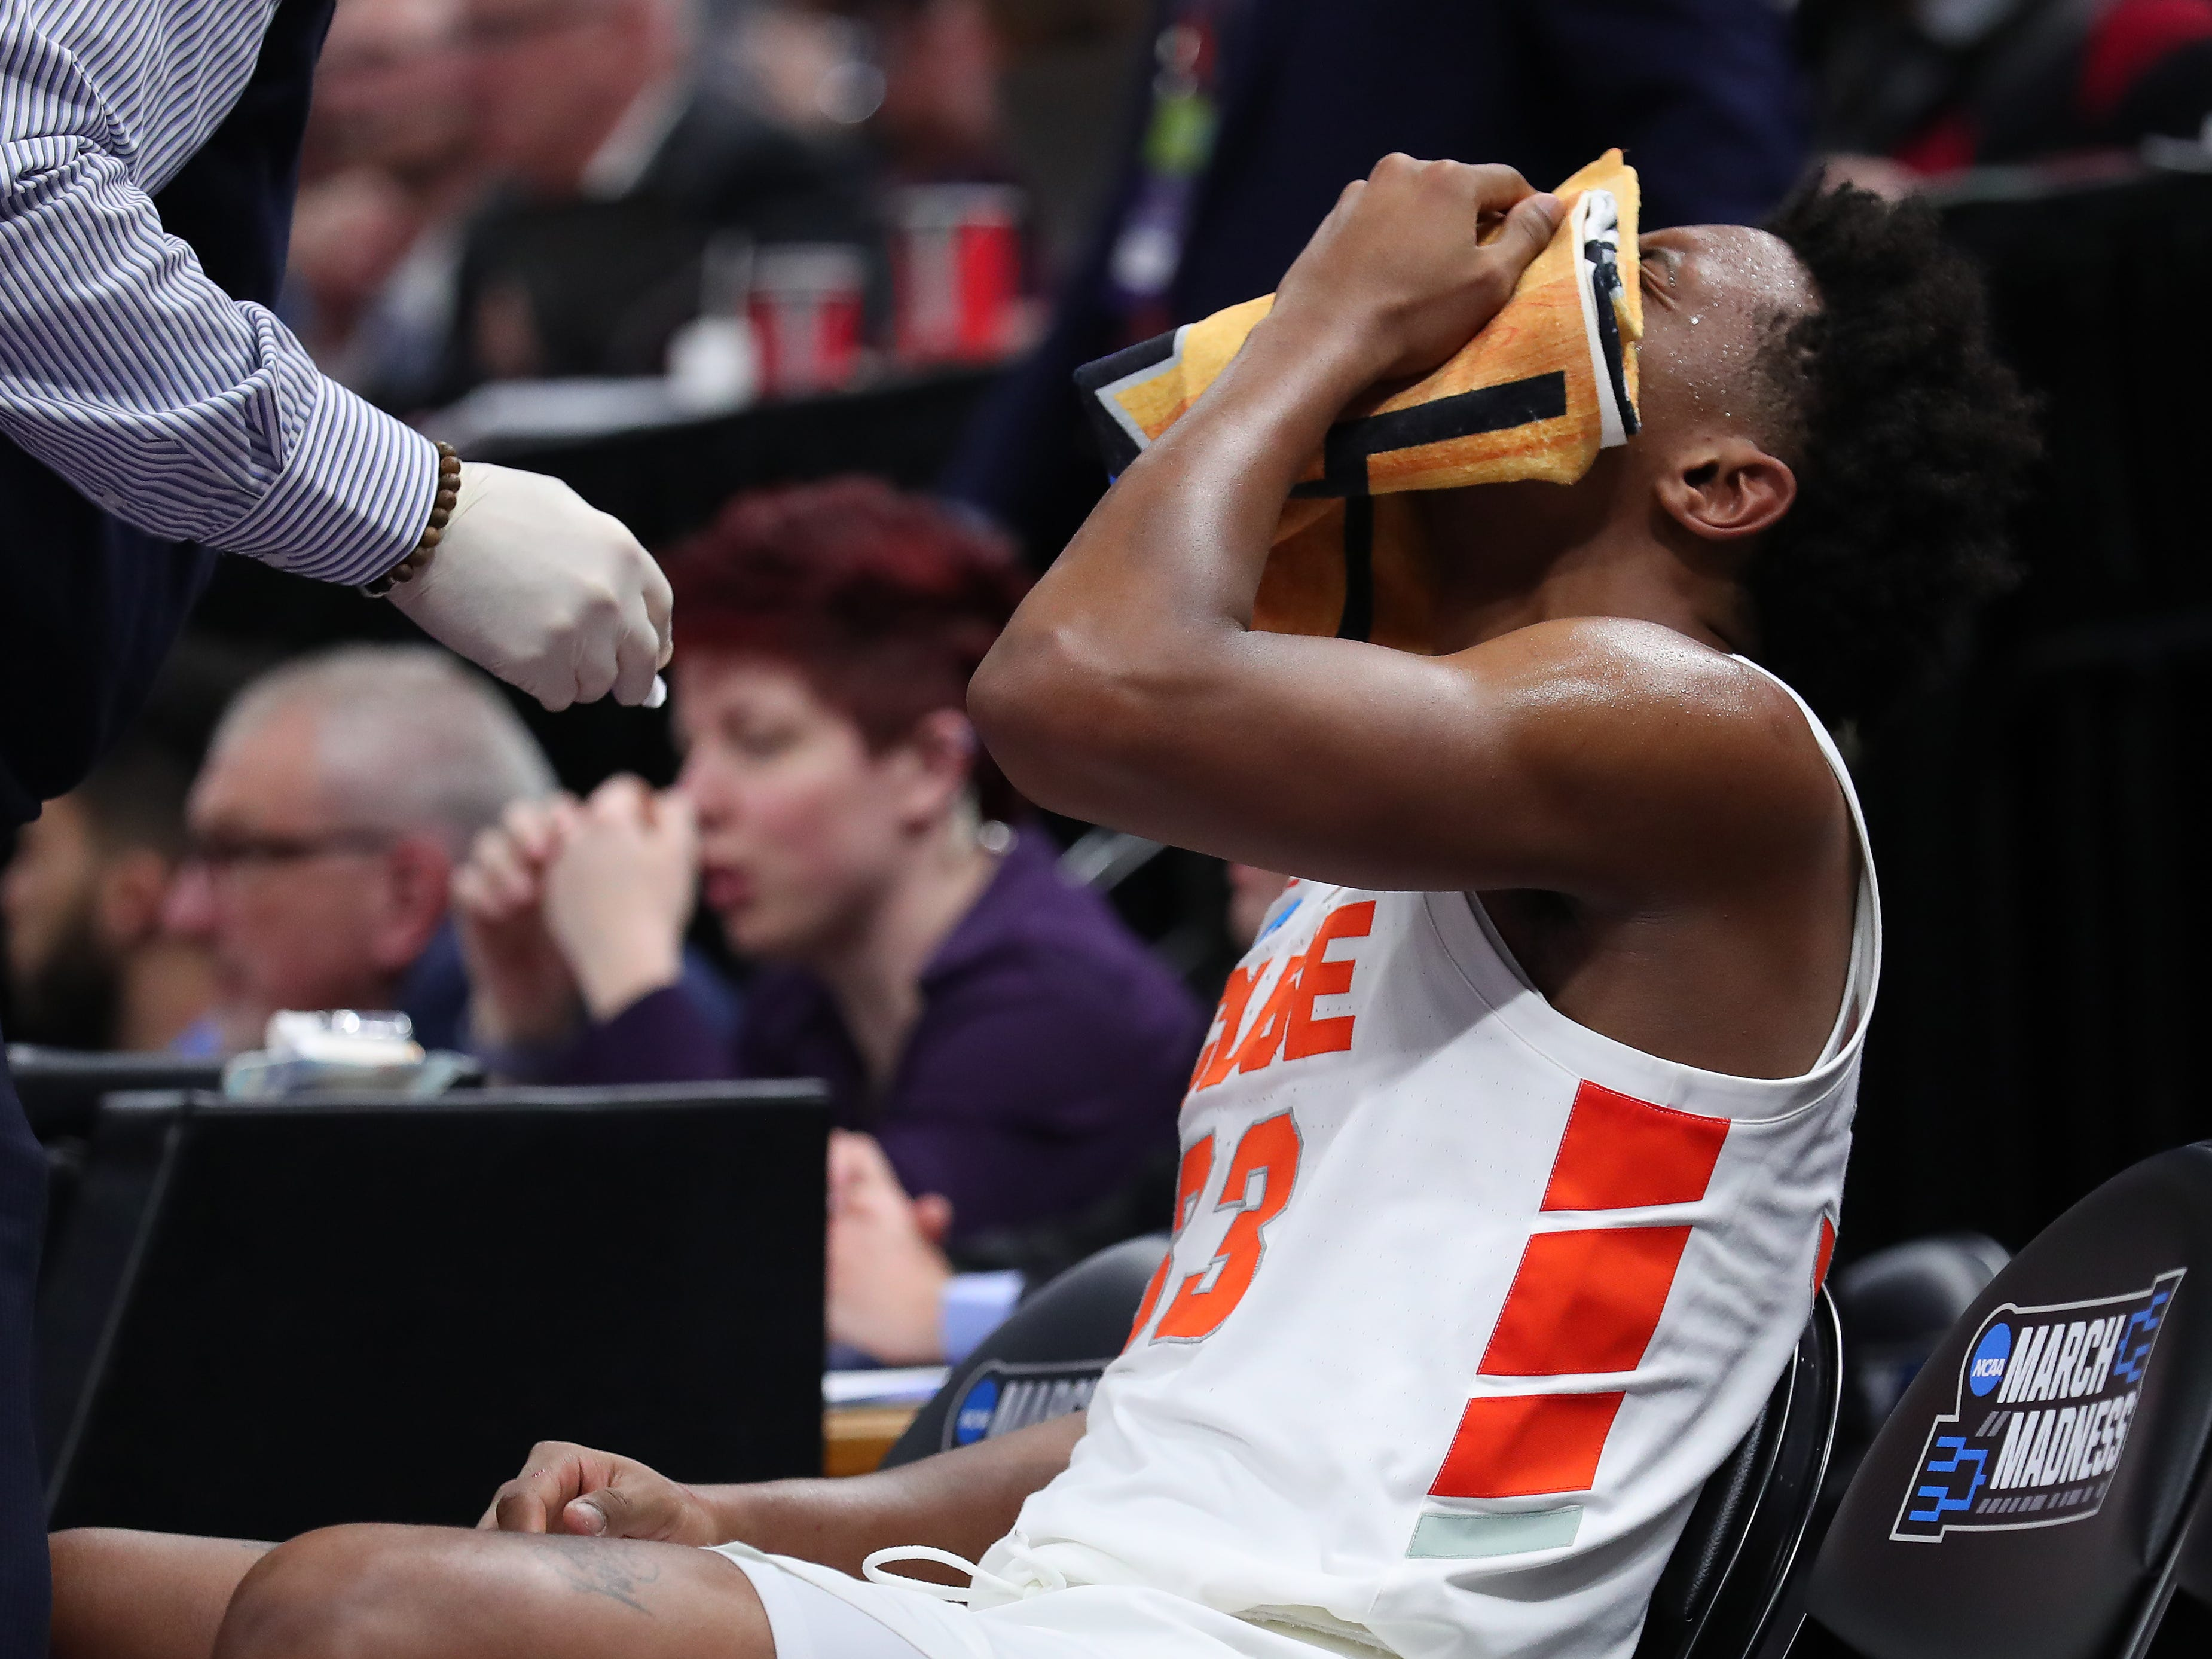 Elijah Hughes of the Syracuse Orange sits on the bench after getting hit in the face by Freddie Gillespie of the Baylor Bears during the second half in the first round of the 2019 NCAA Men's Basketball Tournament at Vivint Smart Home Arena on March 21, 2019 in Salt Lake City, Utah. Hughes scored 25 points, but Syracuse lost, 78-69.